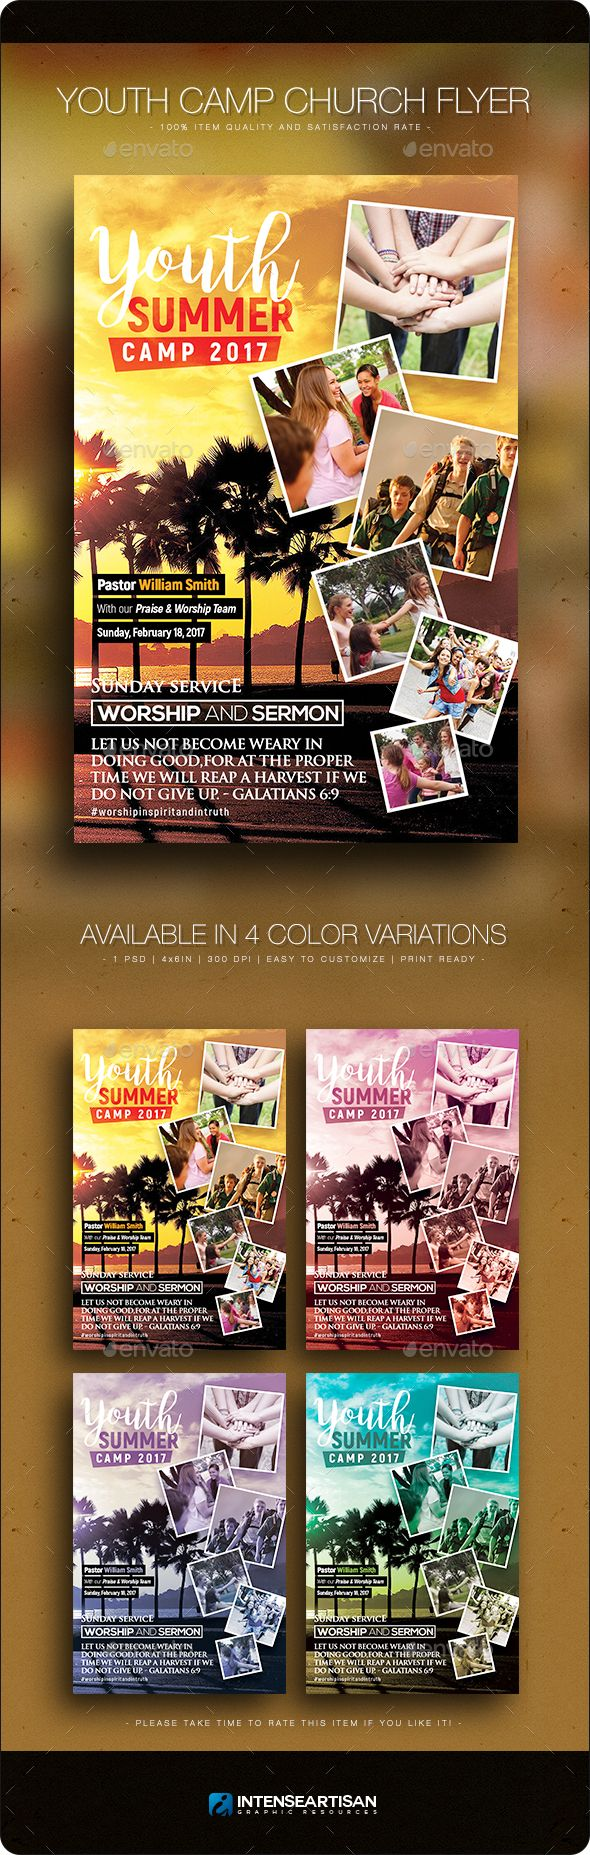 Youth Camp  Church Flyer Template  Youth Camp Flyer Template